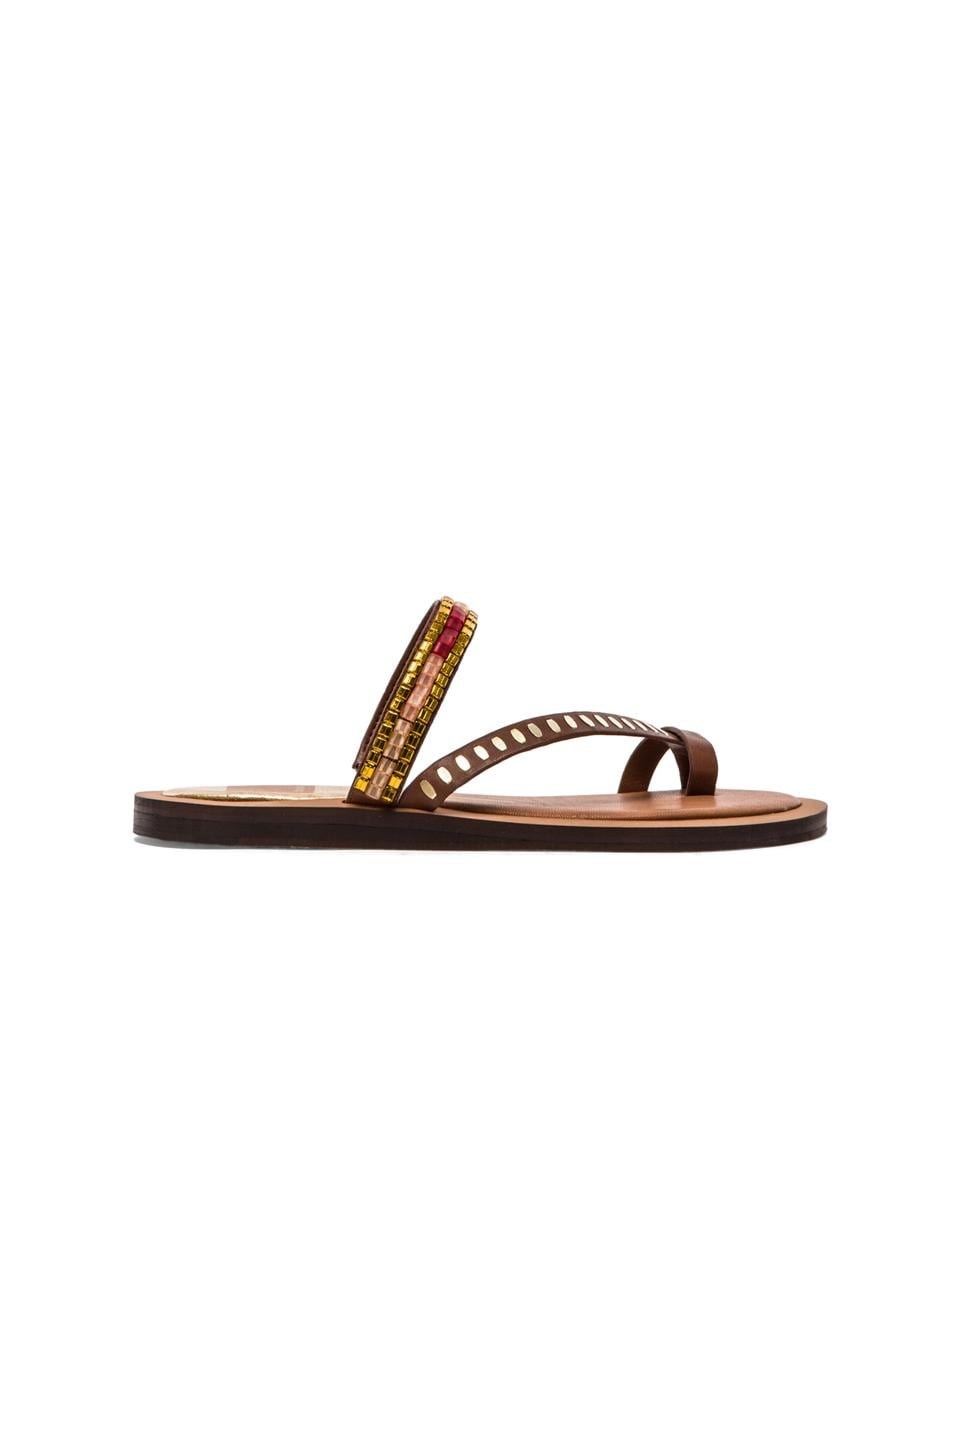 Dolce Vita Franzen Sandal in Brown